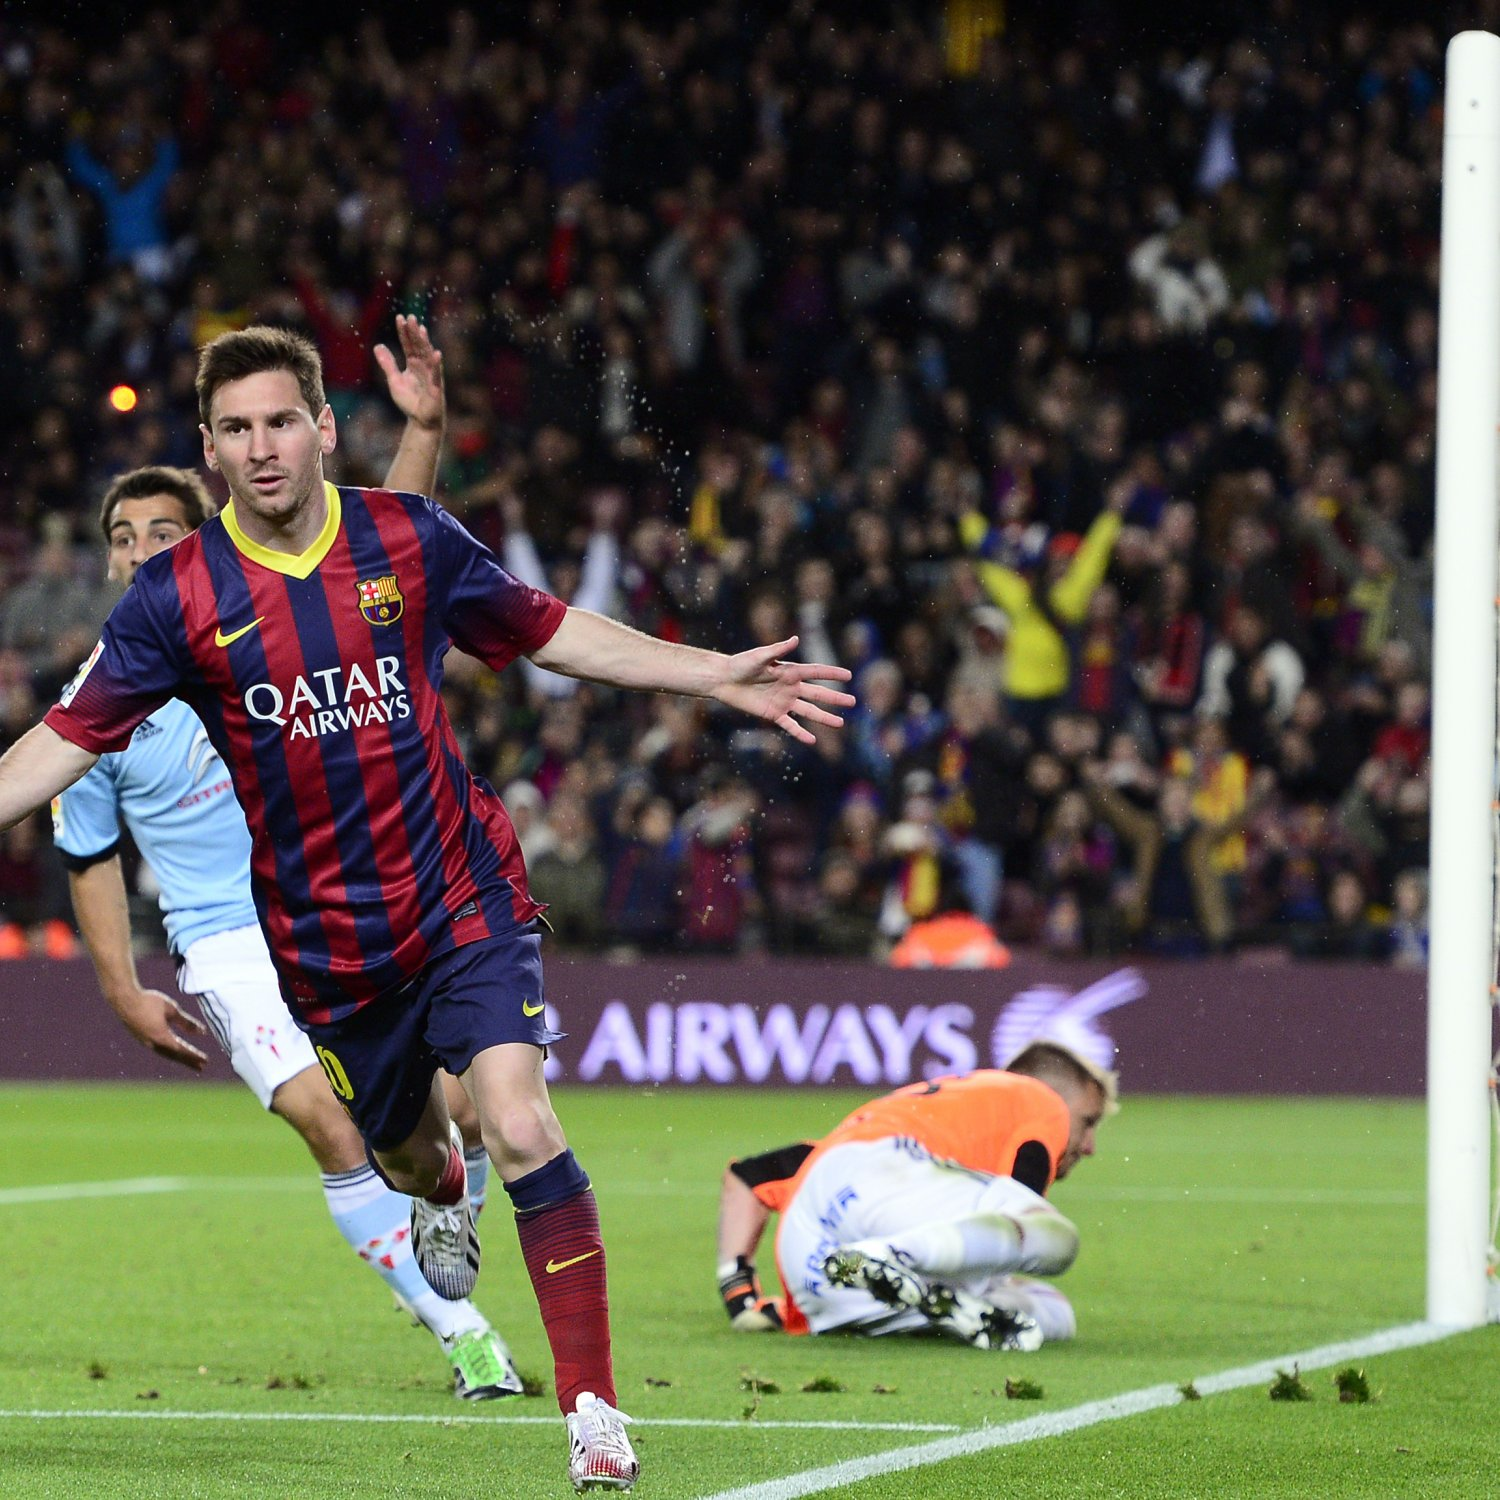 Barcelona Vs Celta Vigo In Youtube: Barcelona Vs. Celta Vigo: La Liga Score, Grades And Post